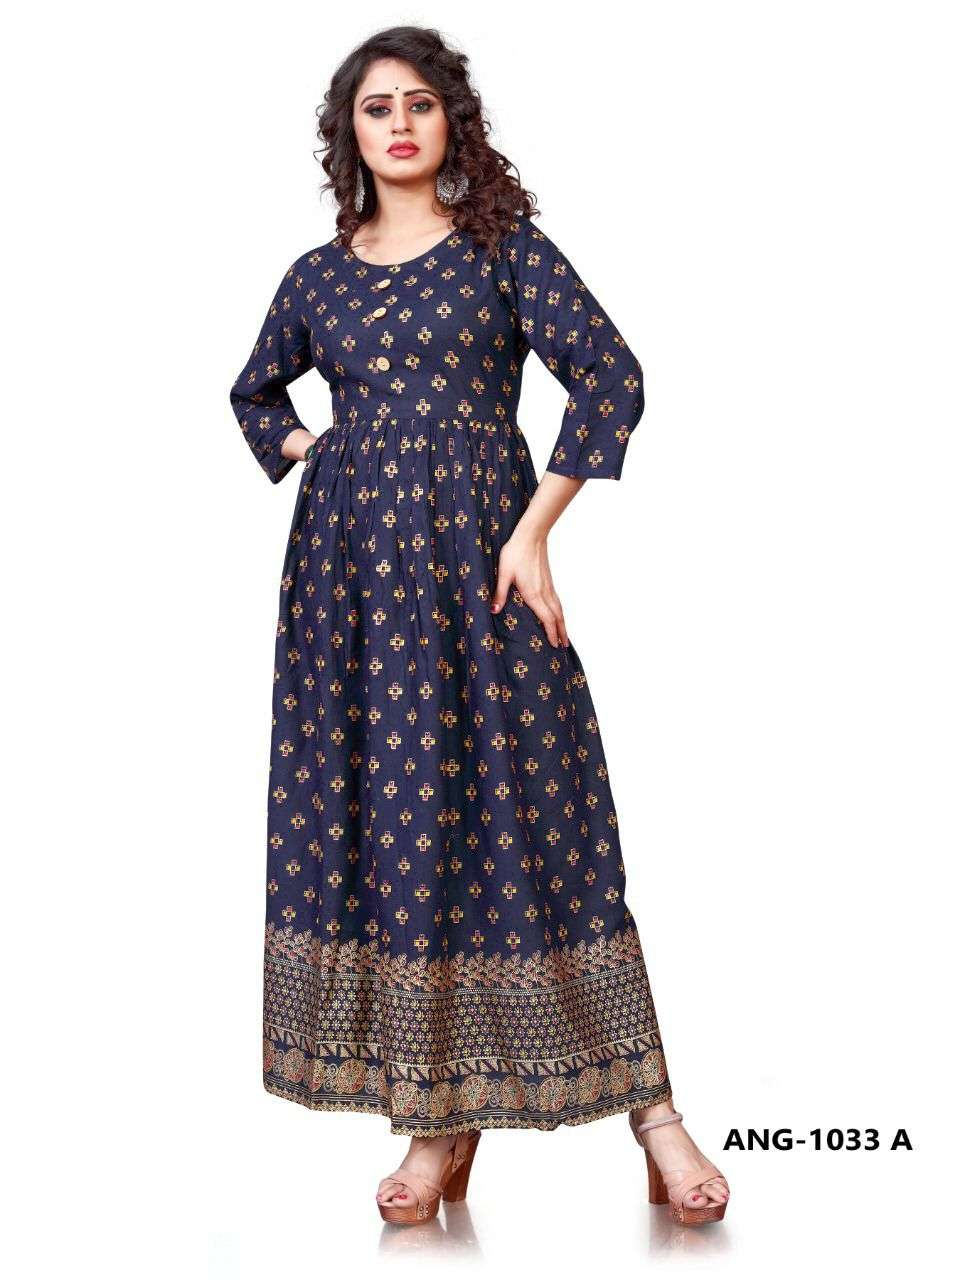 12 ANGEL ANG 1033 GOLD PRINT LONG GOWN DRESS READYMADE COLLECTION